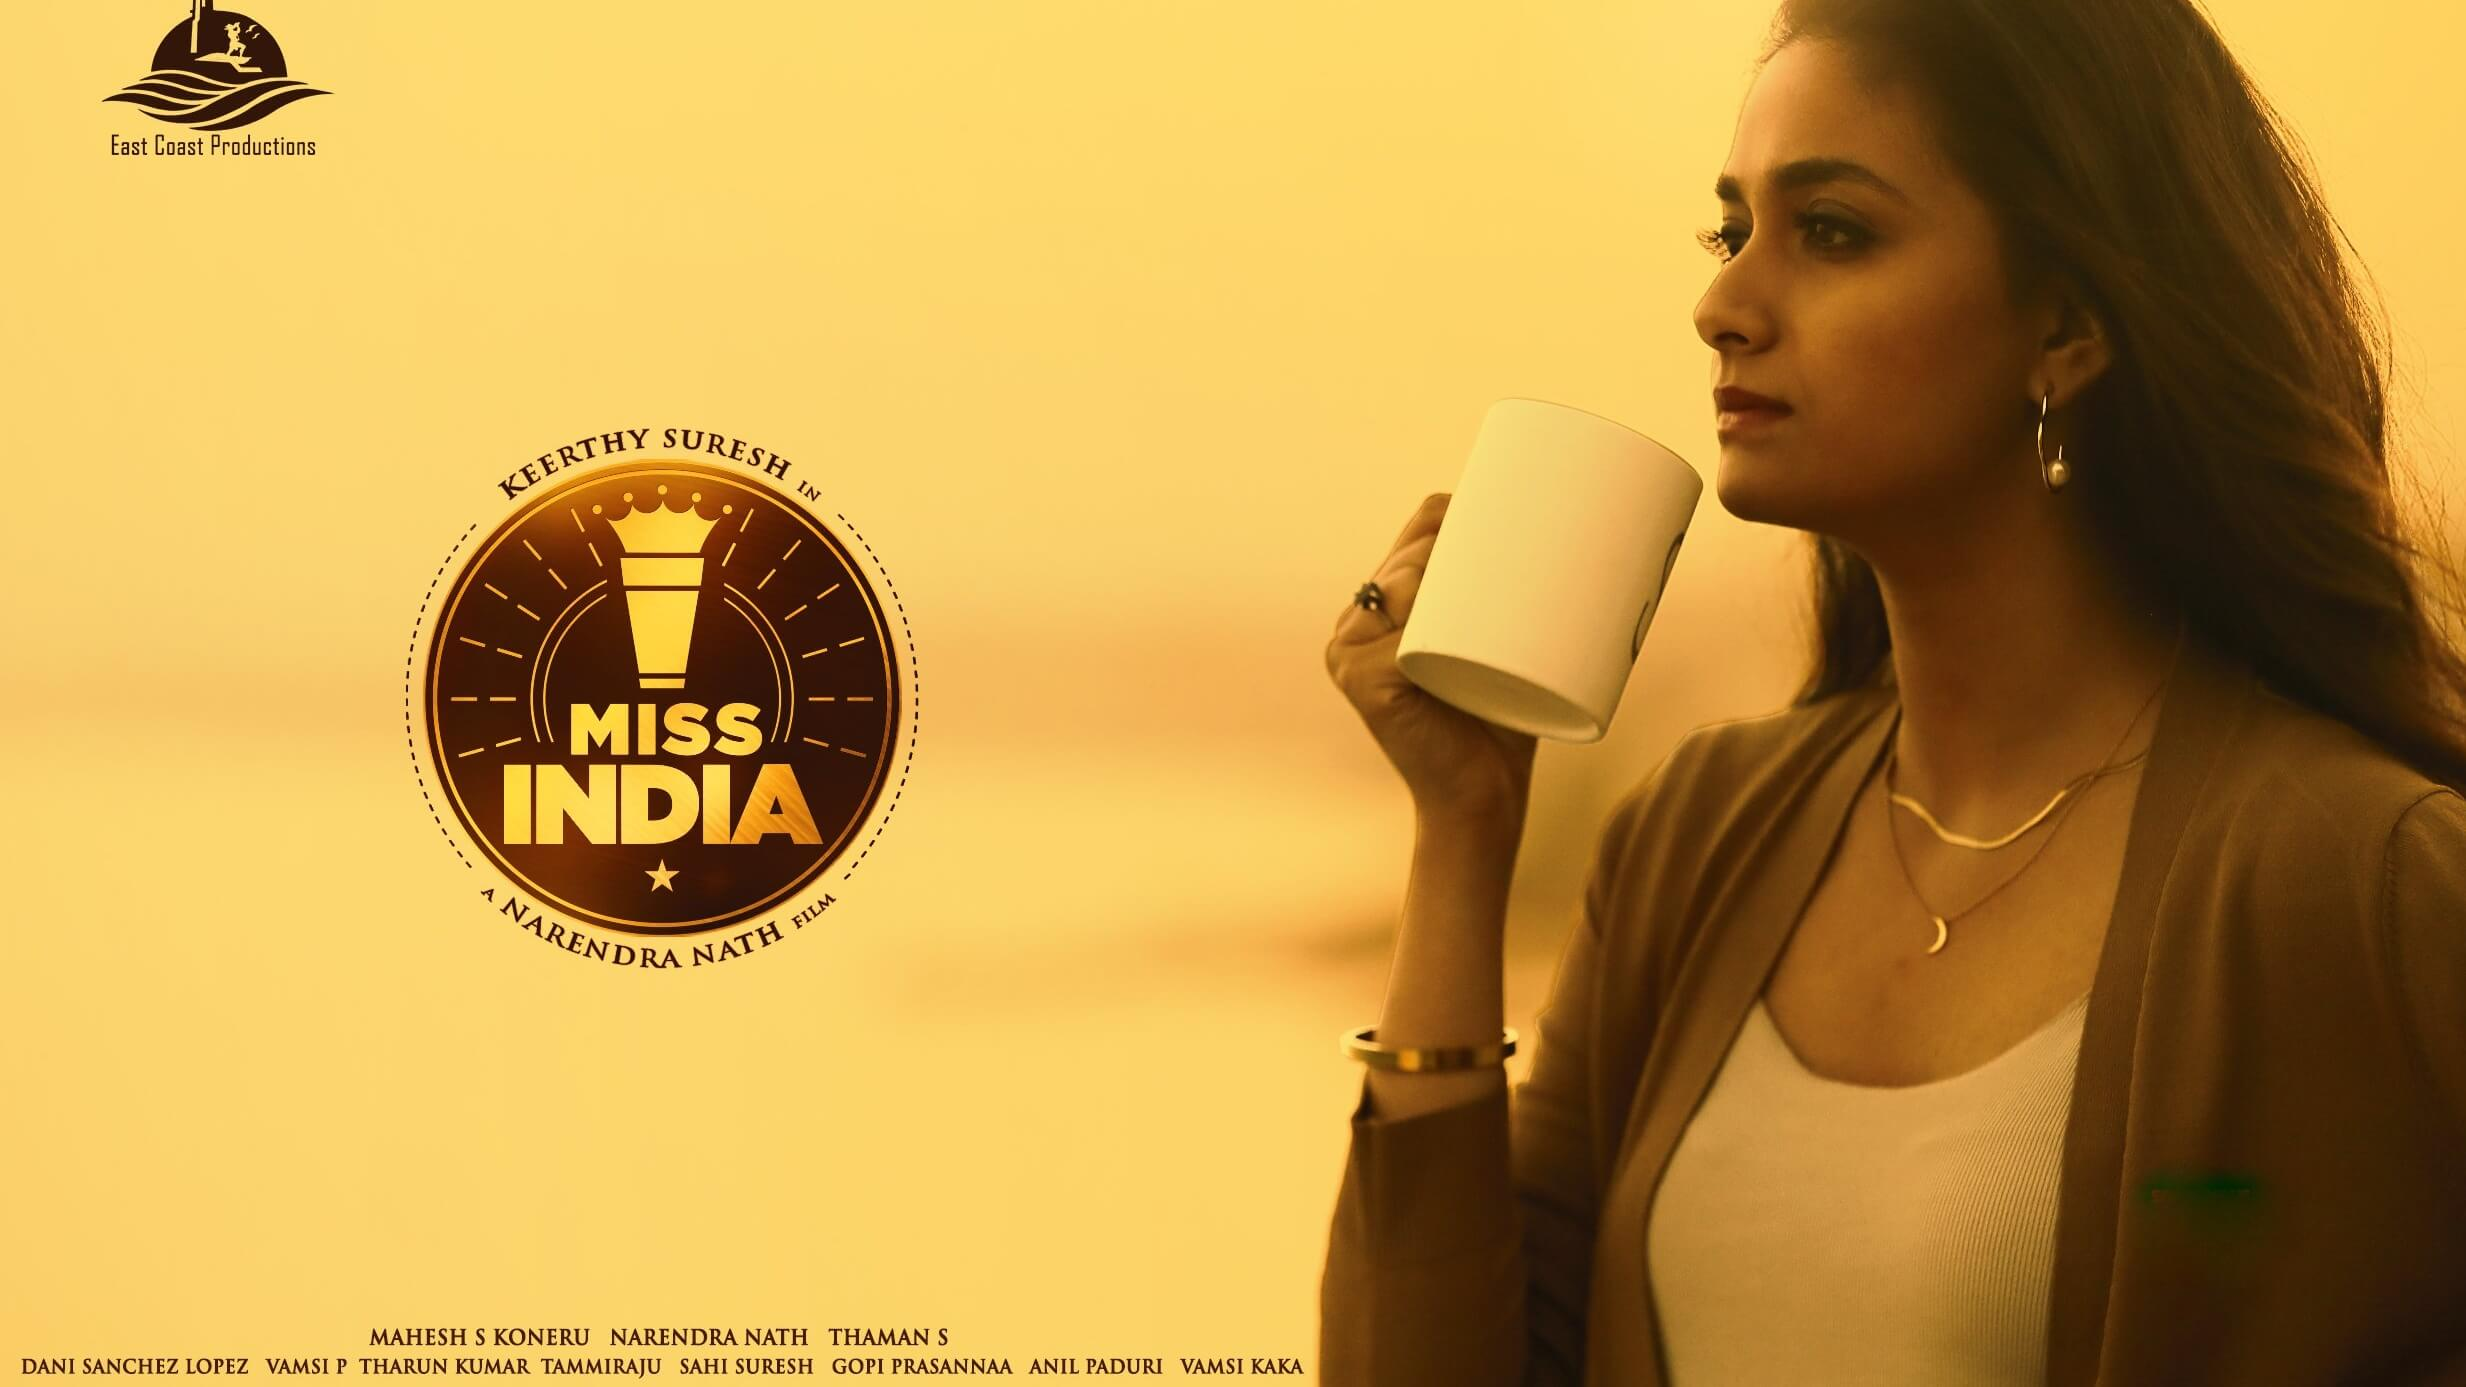 Miss India Movie Reviews and Ratings